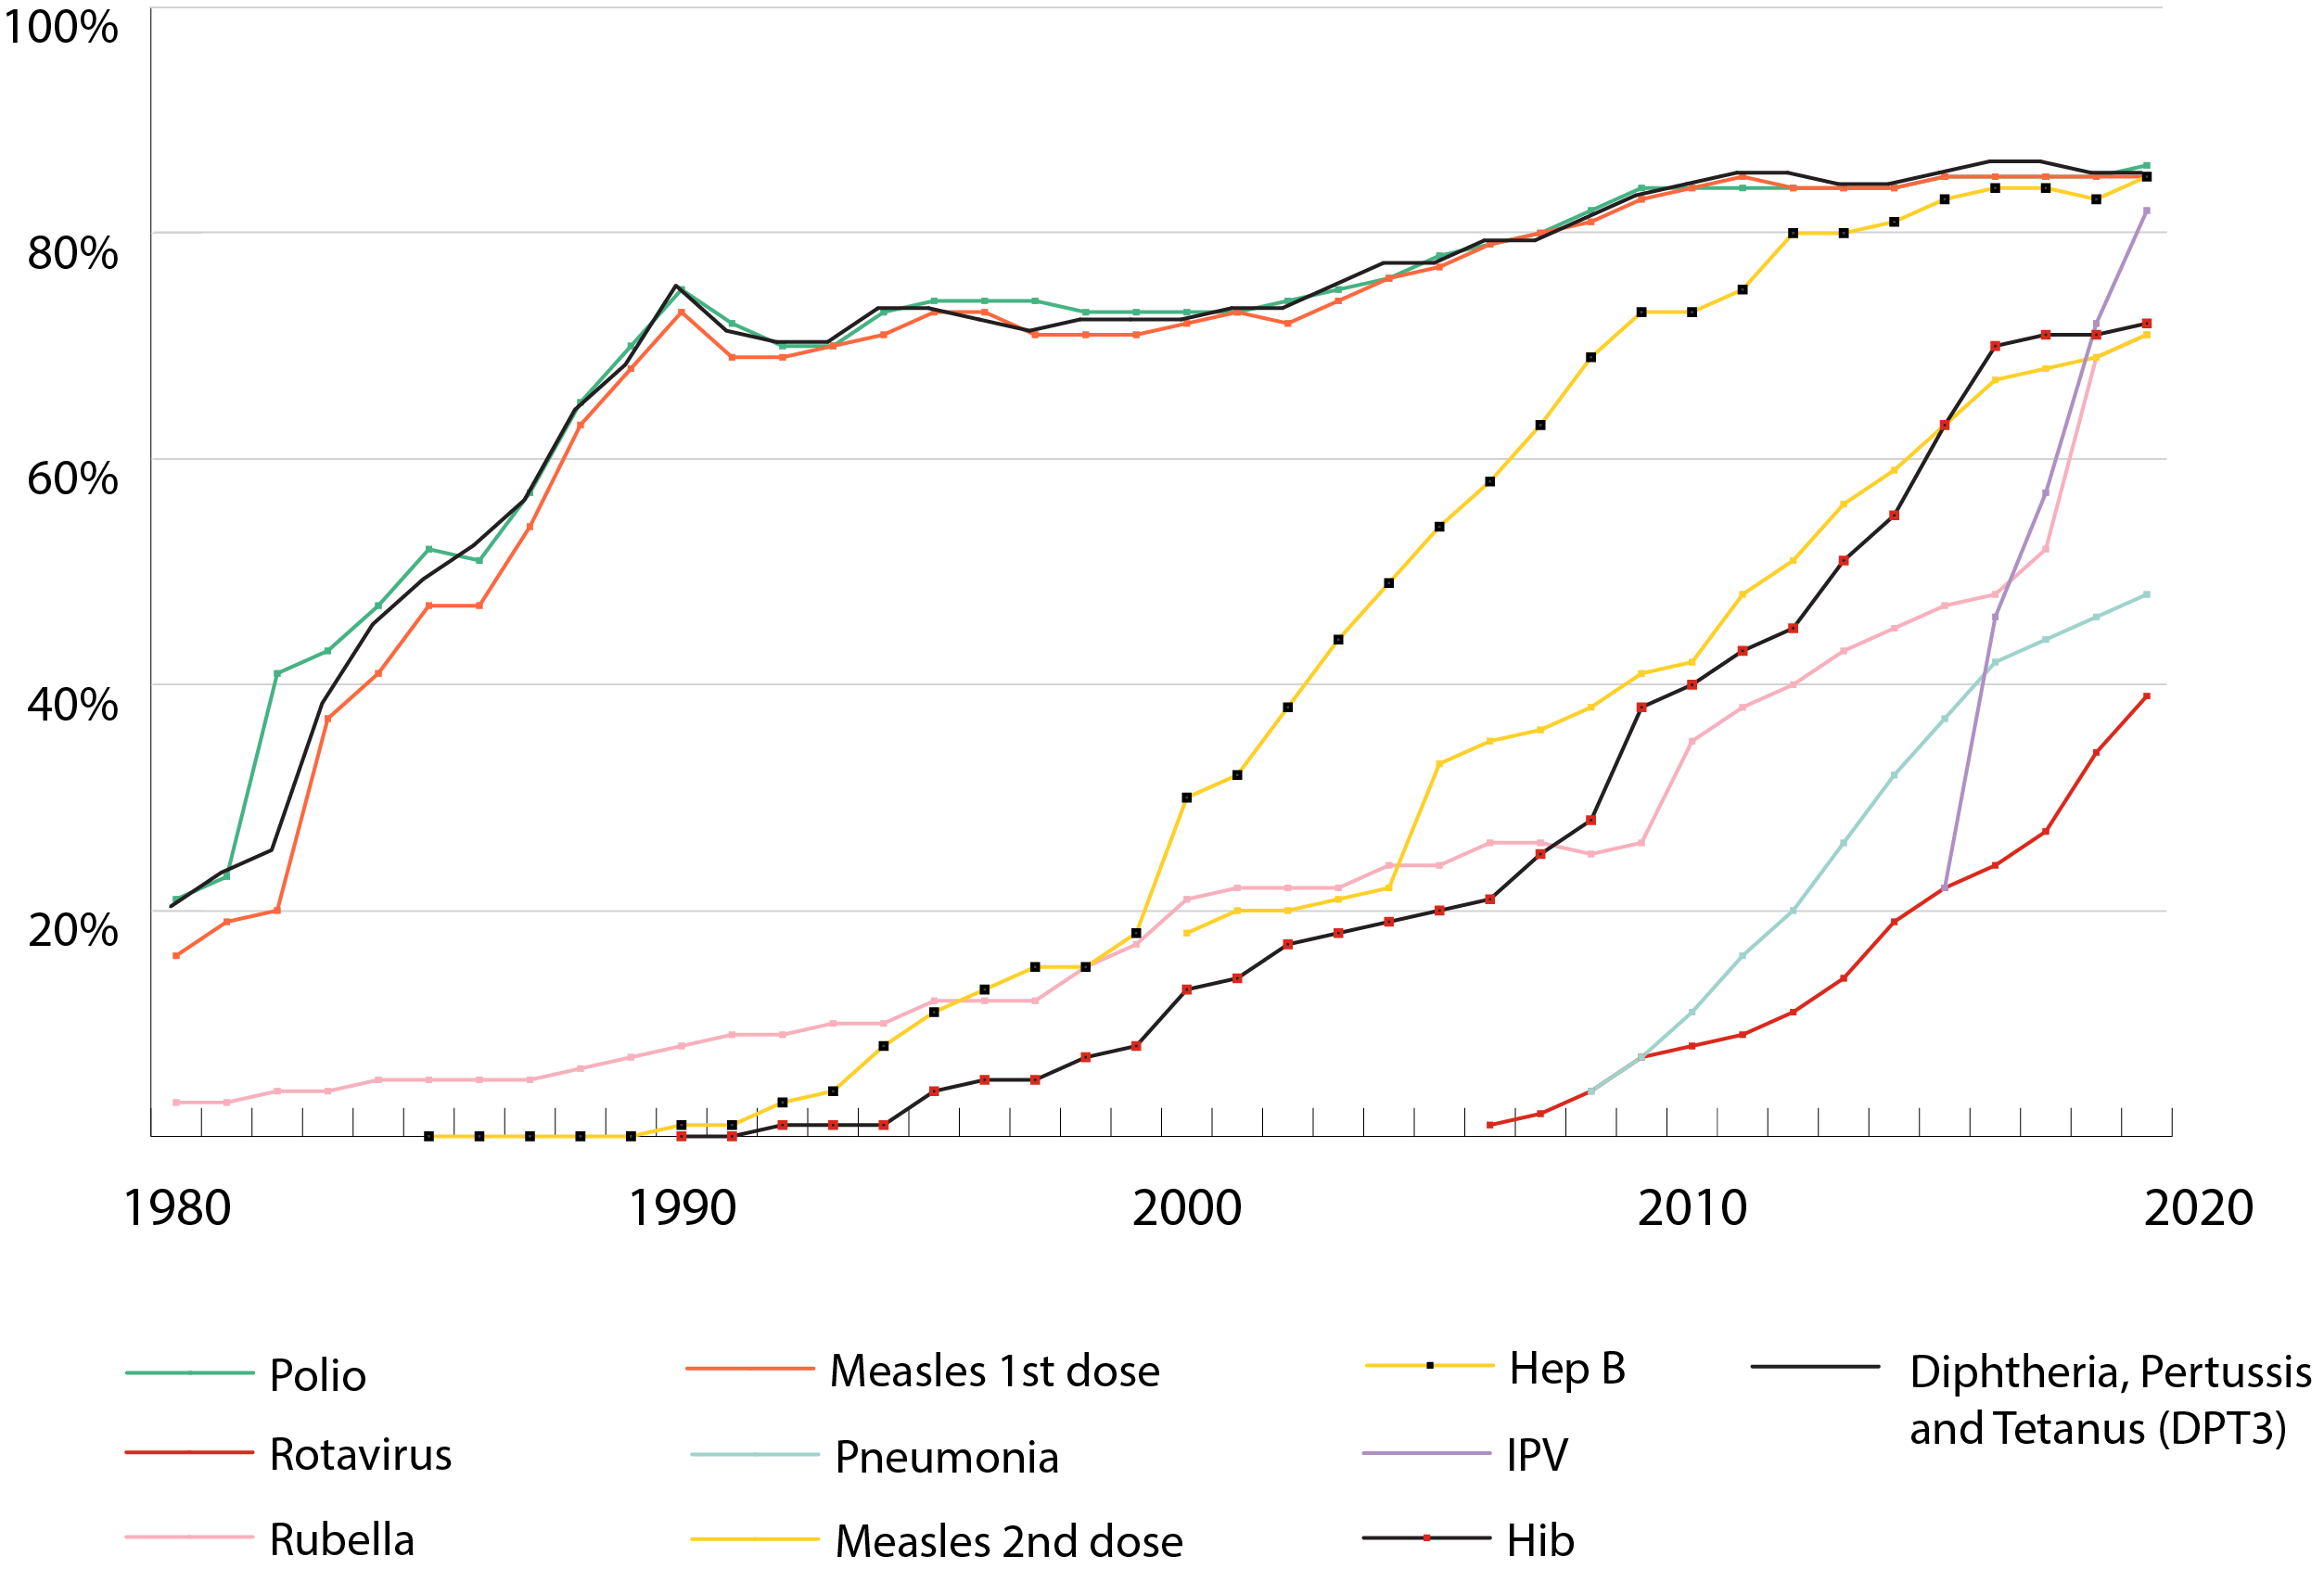 Graph displaying immunisation coverage by antigen from 1980 through to 2019.